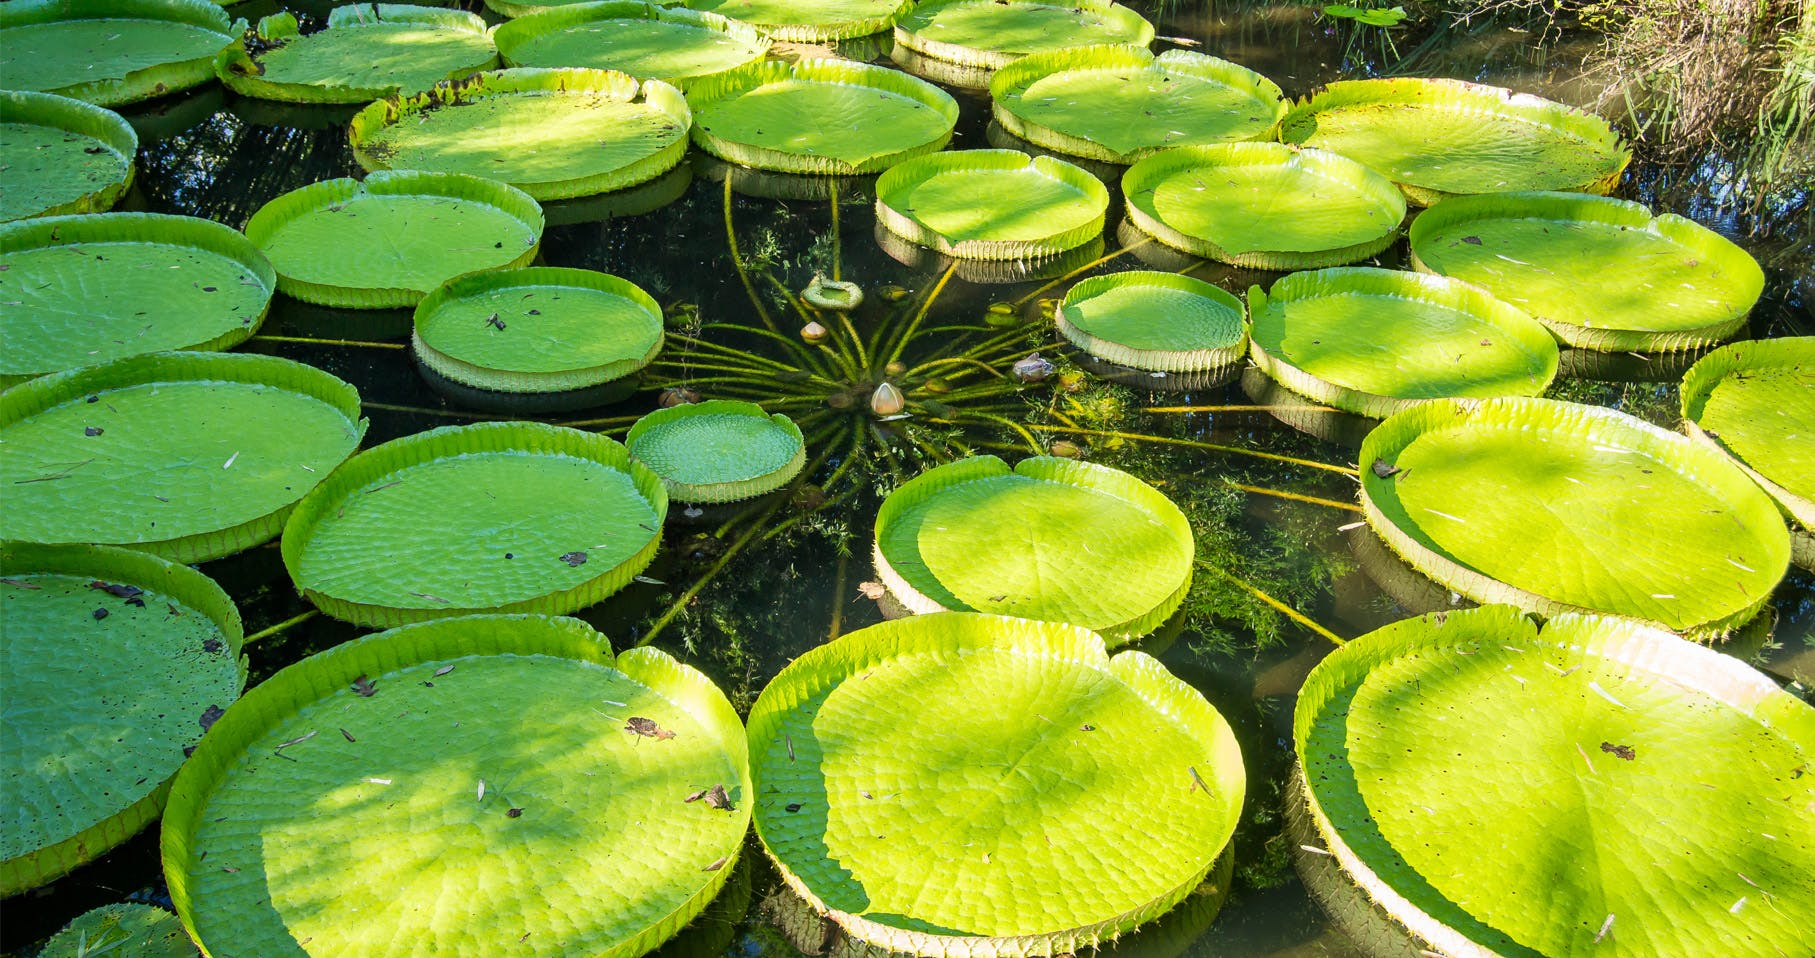 victoria lily pads in a garden